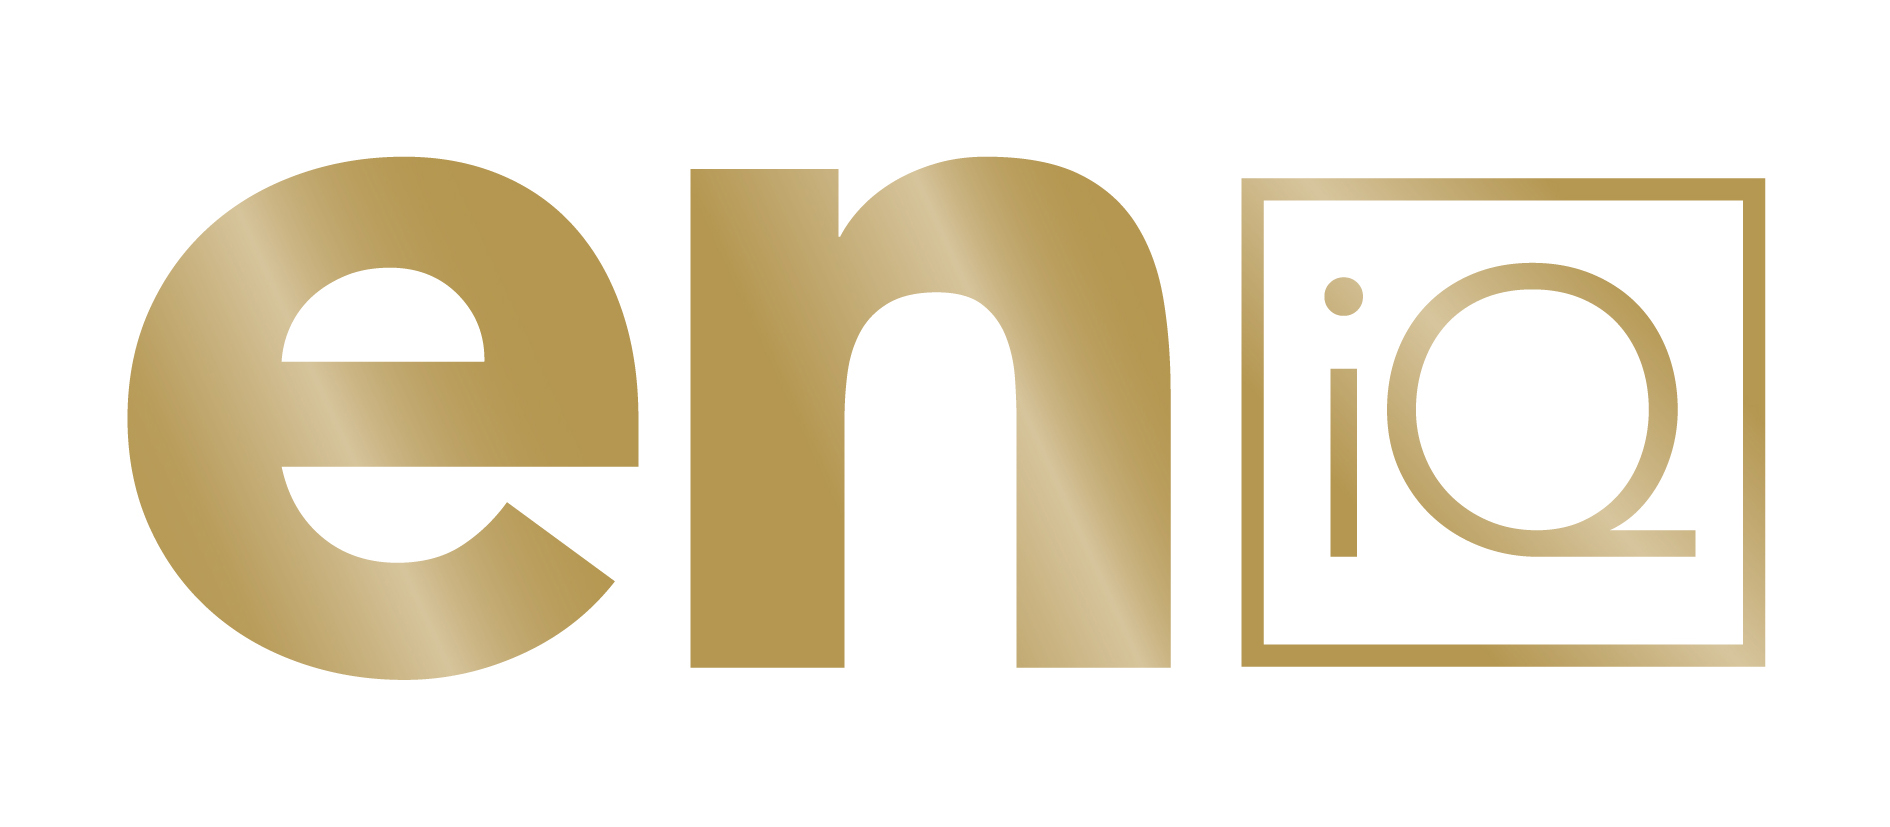 ENiQ Logo Suite-Golden Metallic Look.jpg